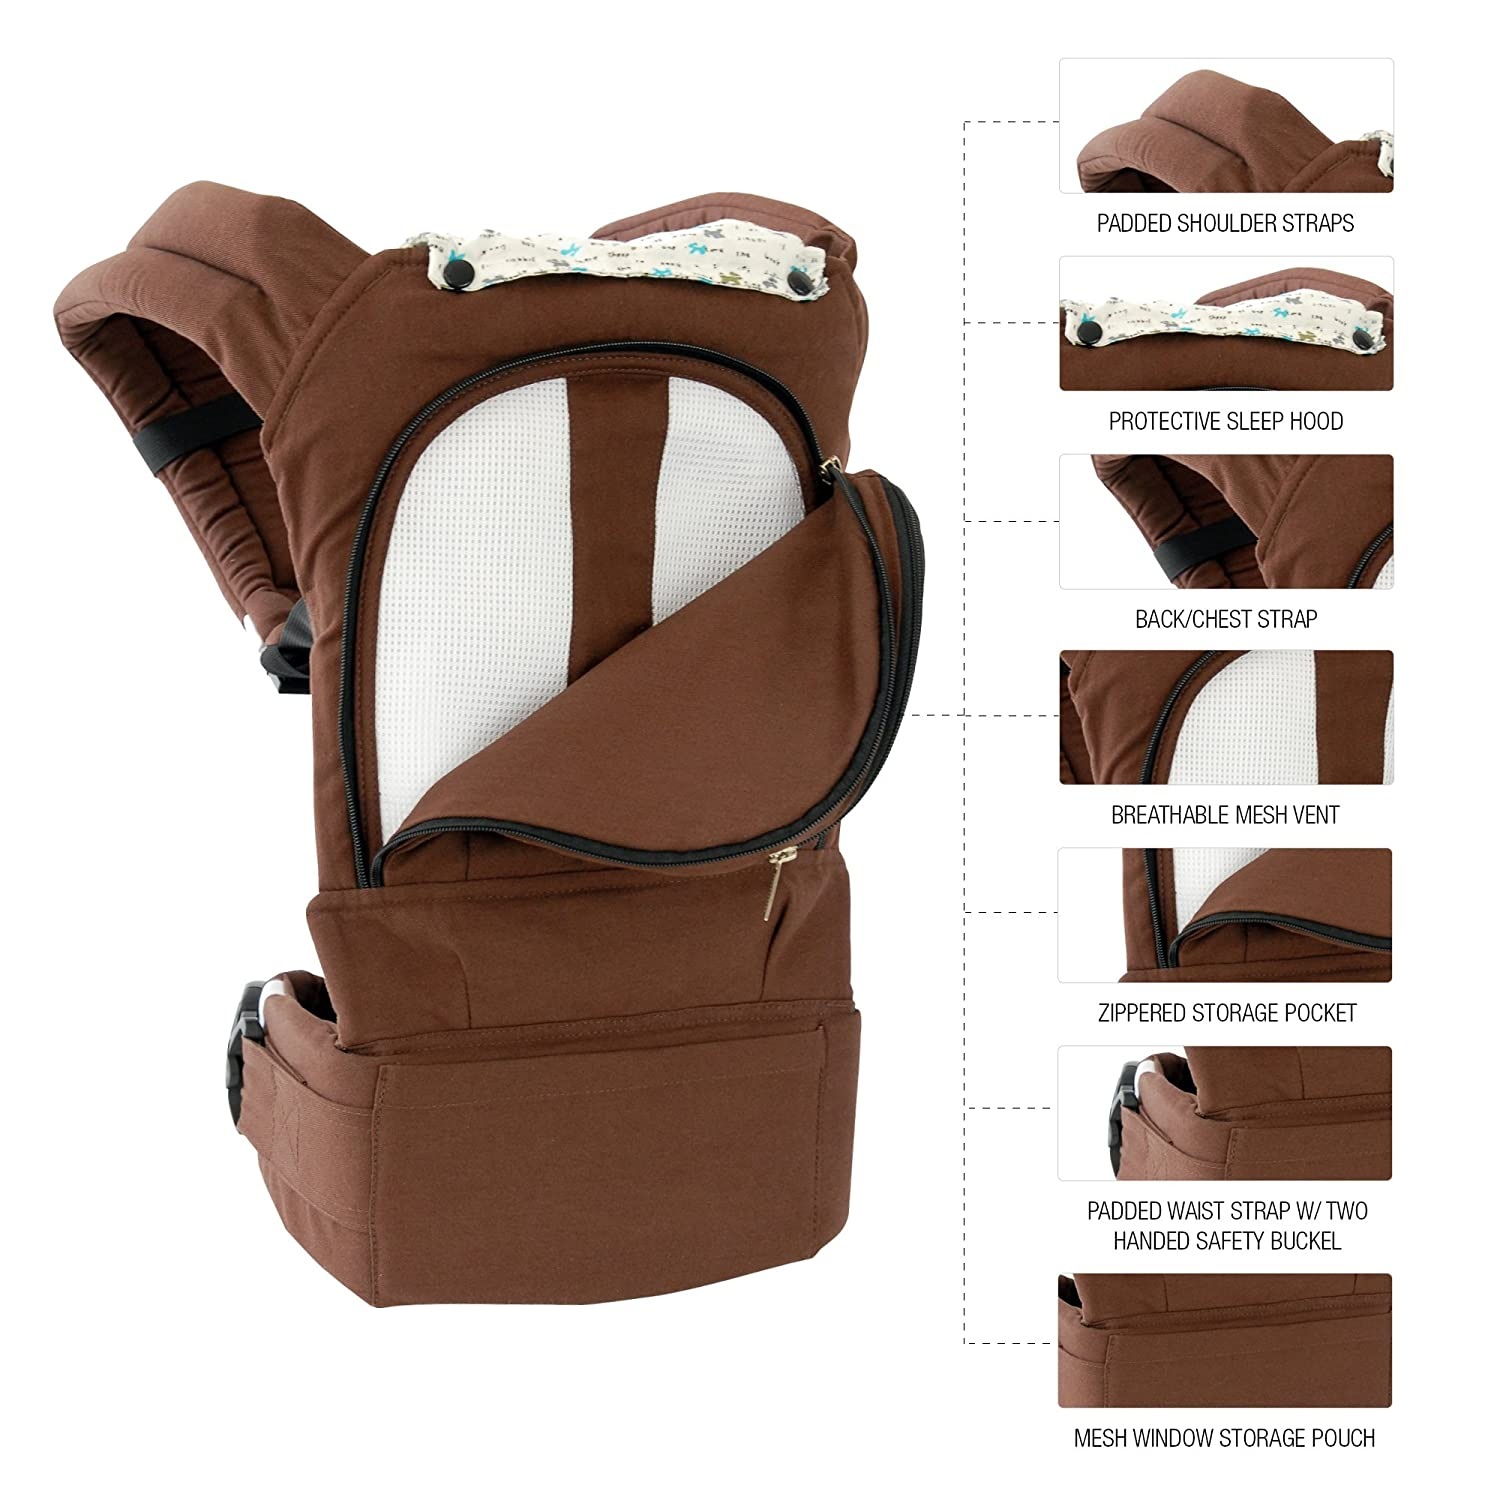 Amazon.com : Mo+m Ergonomic Baby Sling Carrier w/ Mesh Cooling Vent ...